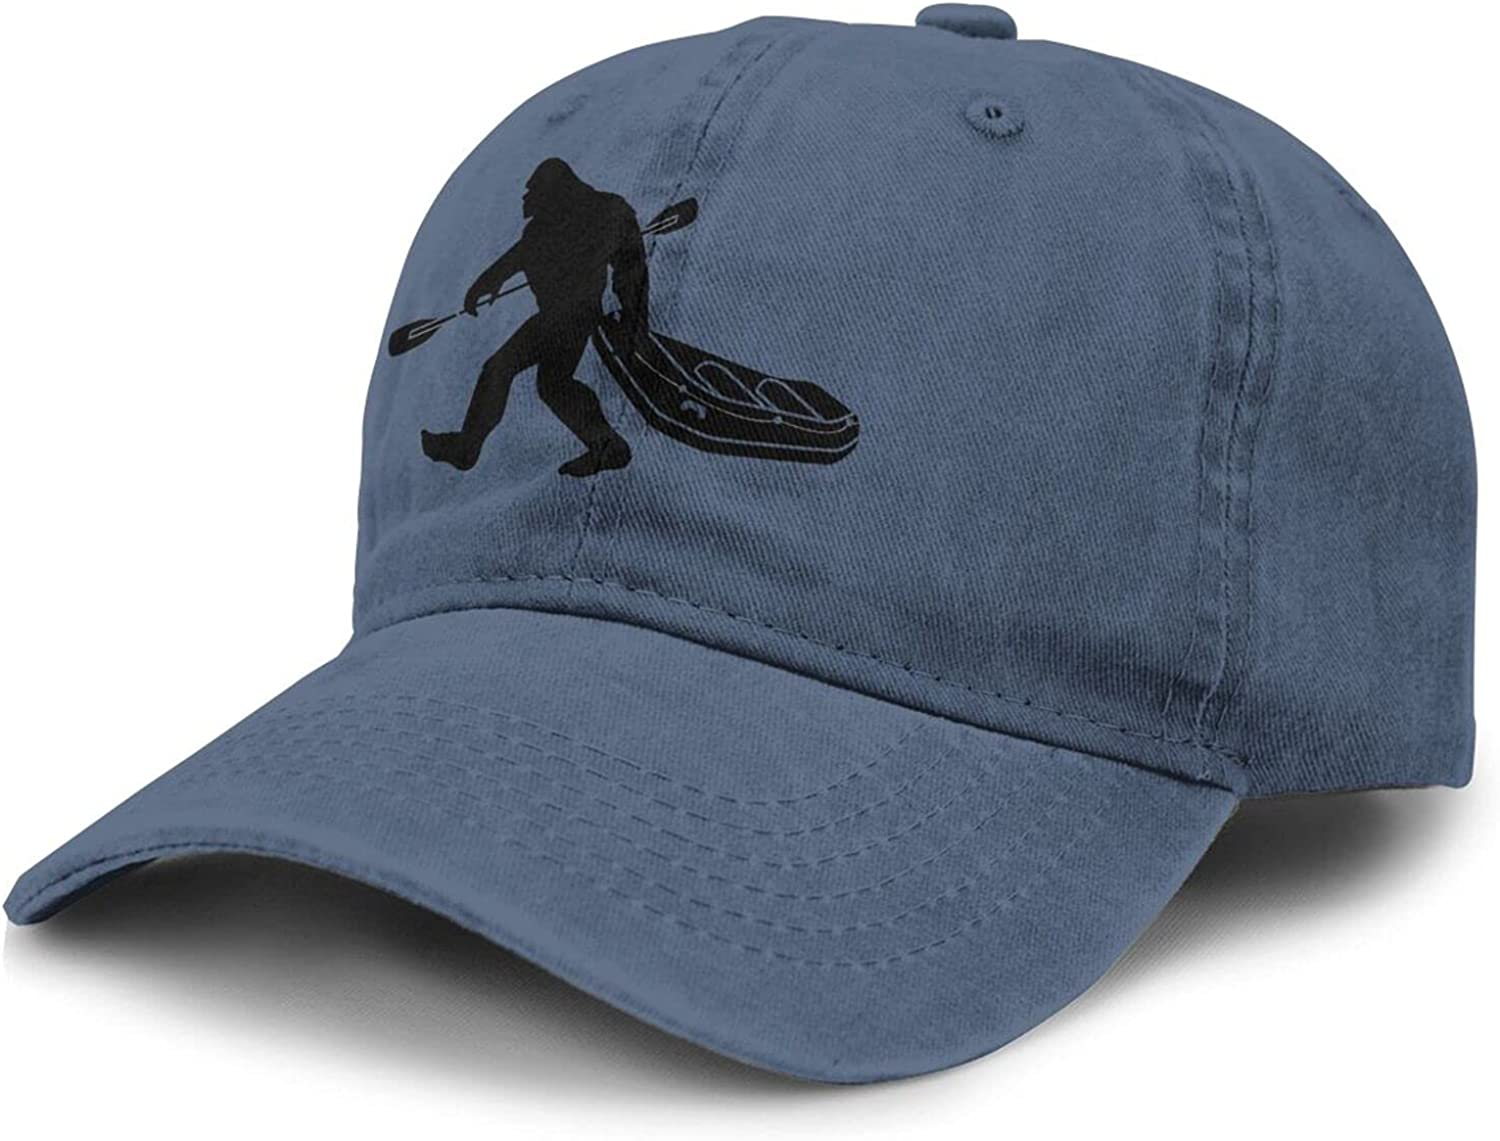 PARKNOTES Bigfoot Lumberjack Logger with Axe and Chainsaw Cheap and Durable Adult Cowboy Hat Unisex